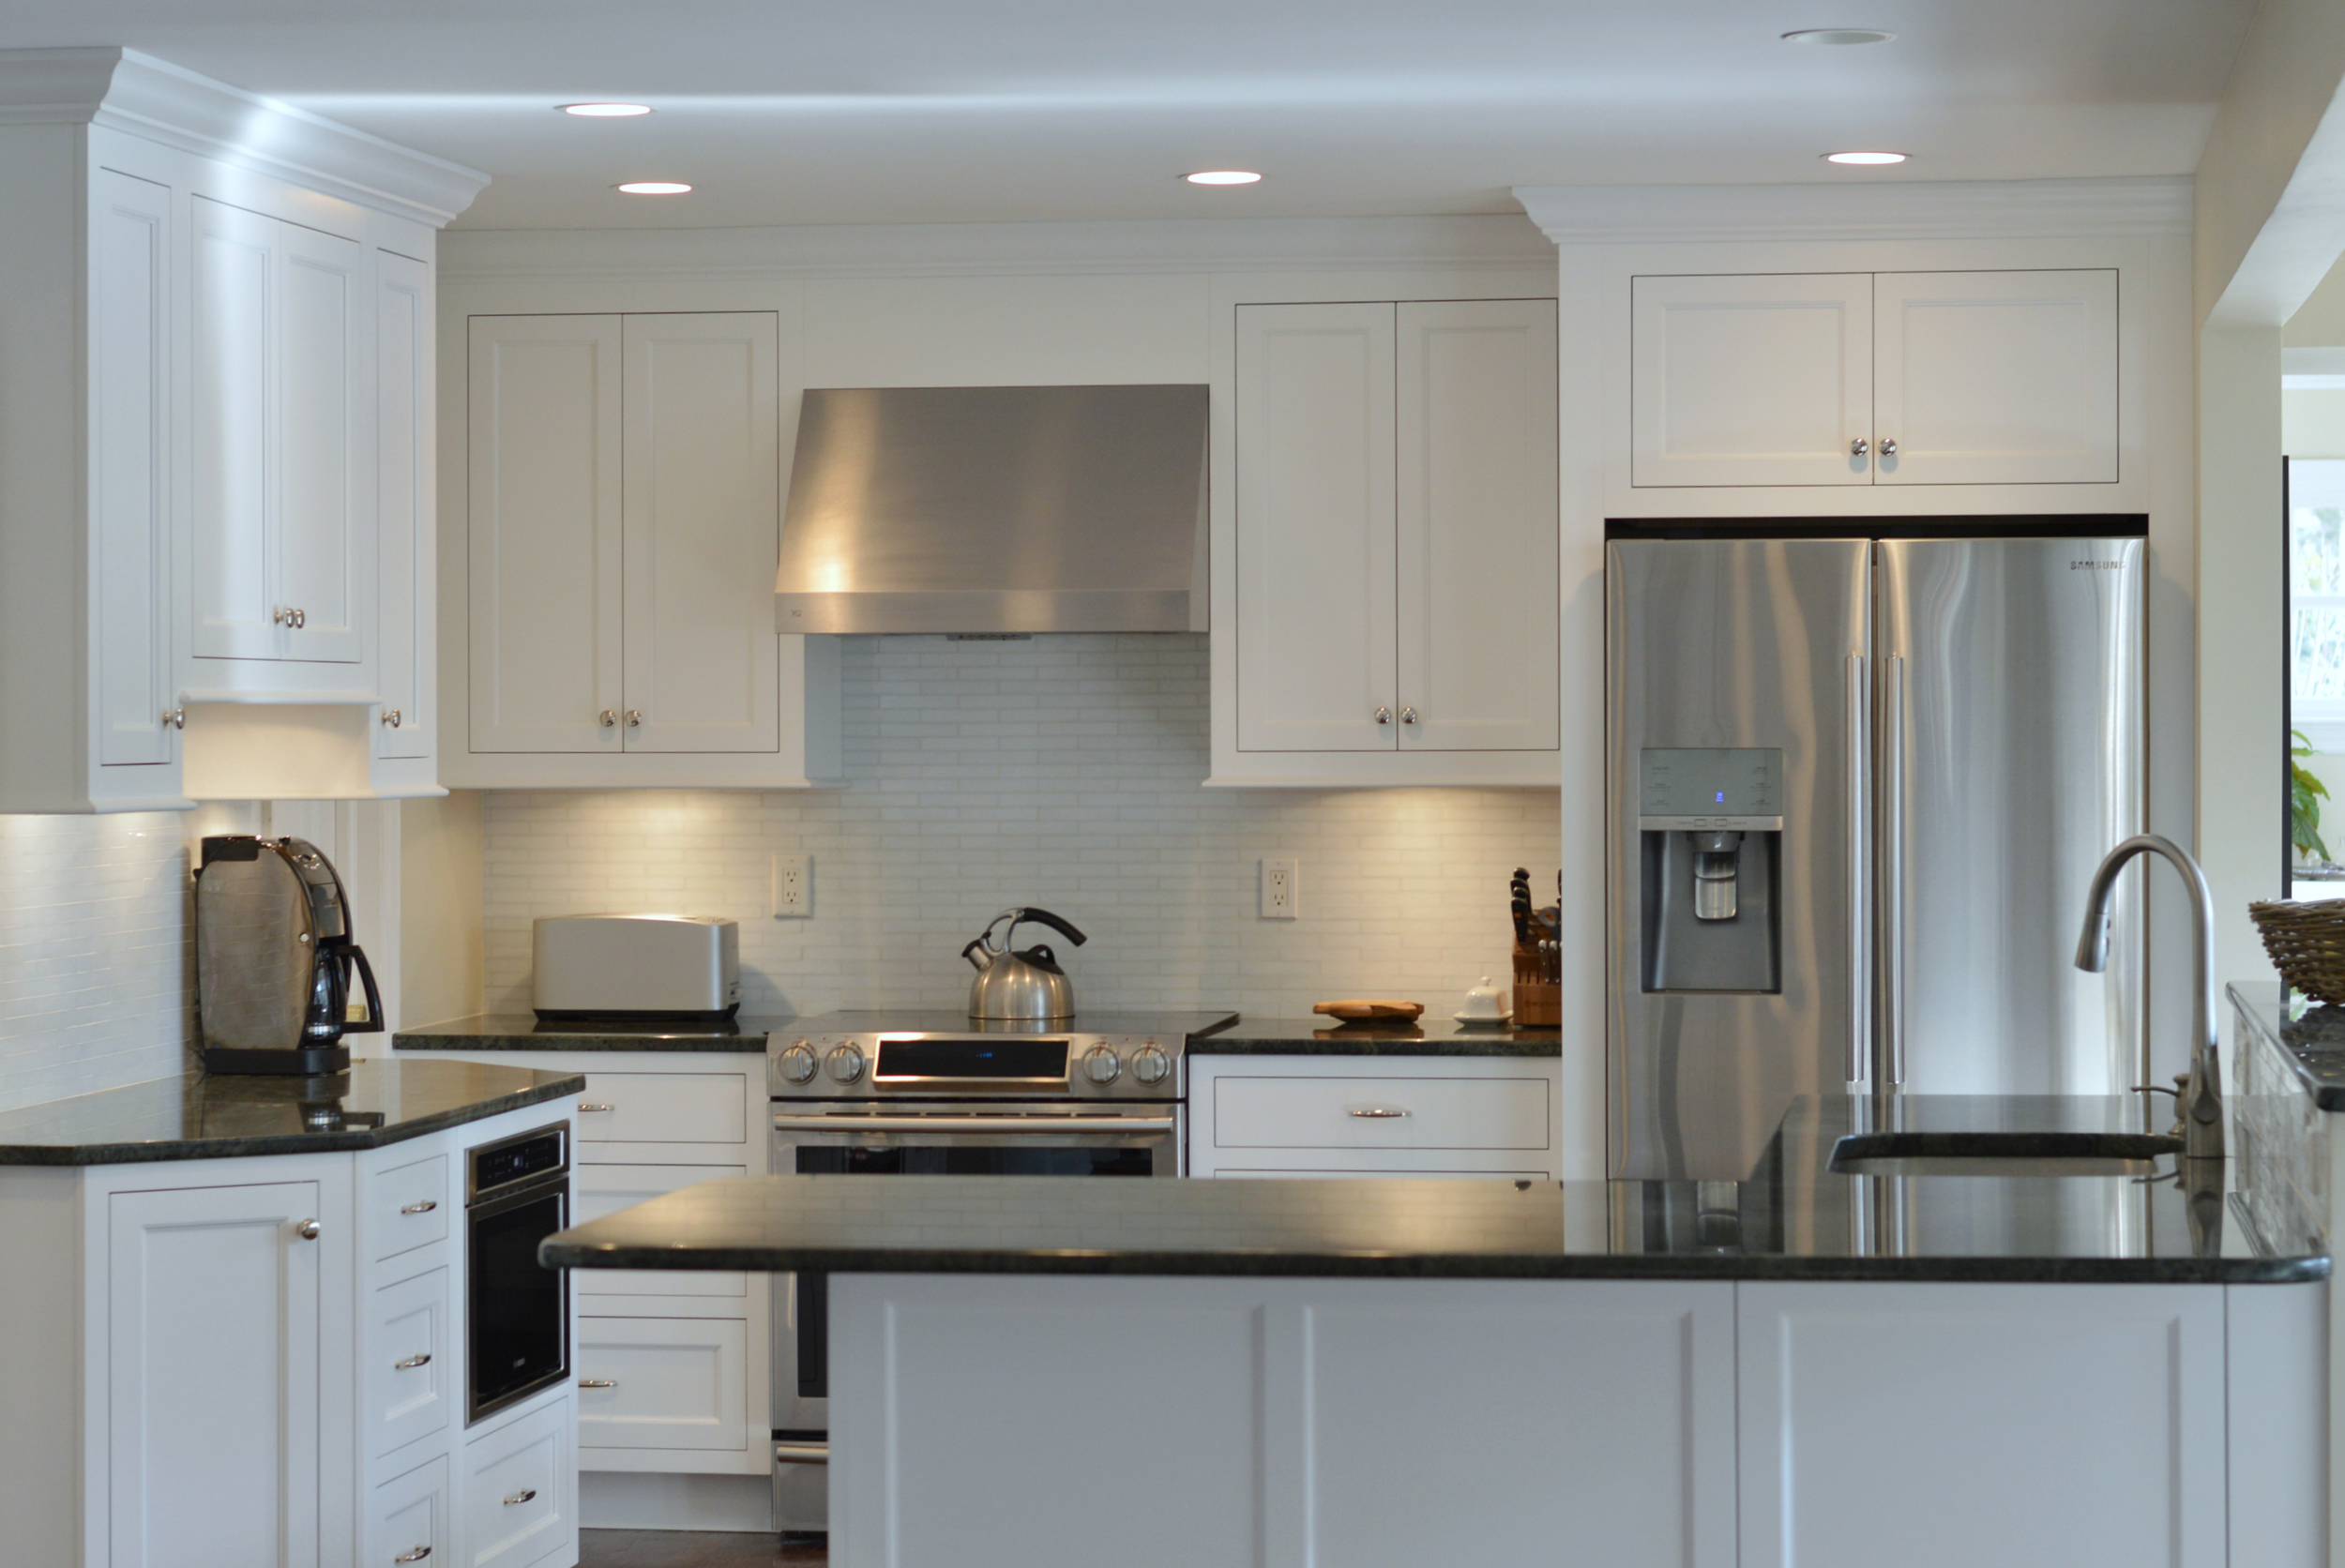 DARIEN CT - KITCHEN CABINET REMODEL (AFTER) | Ackley Cabinet LLC